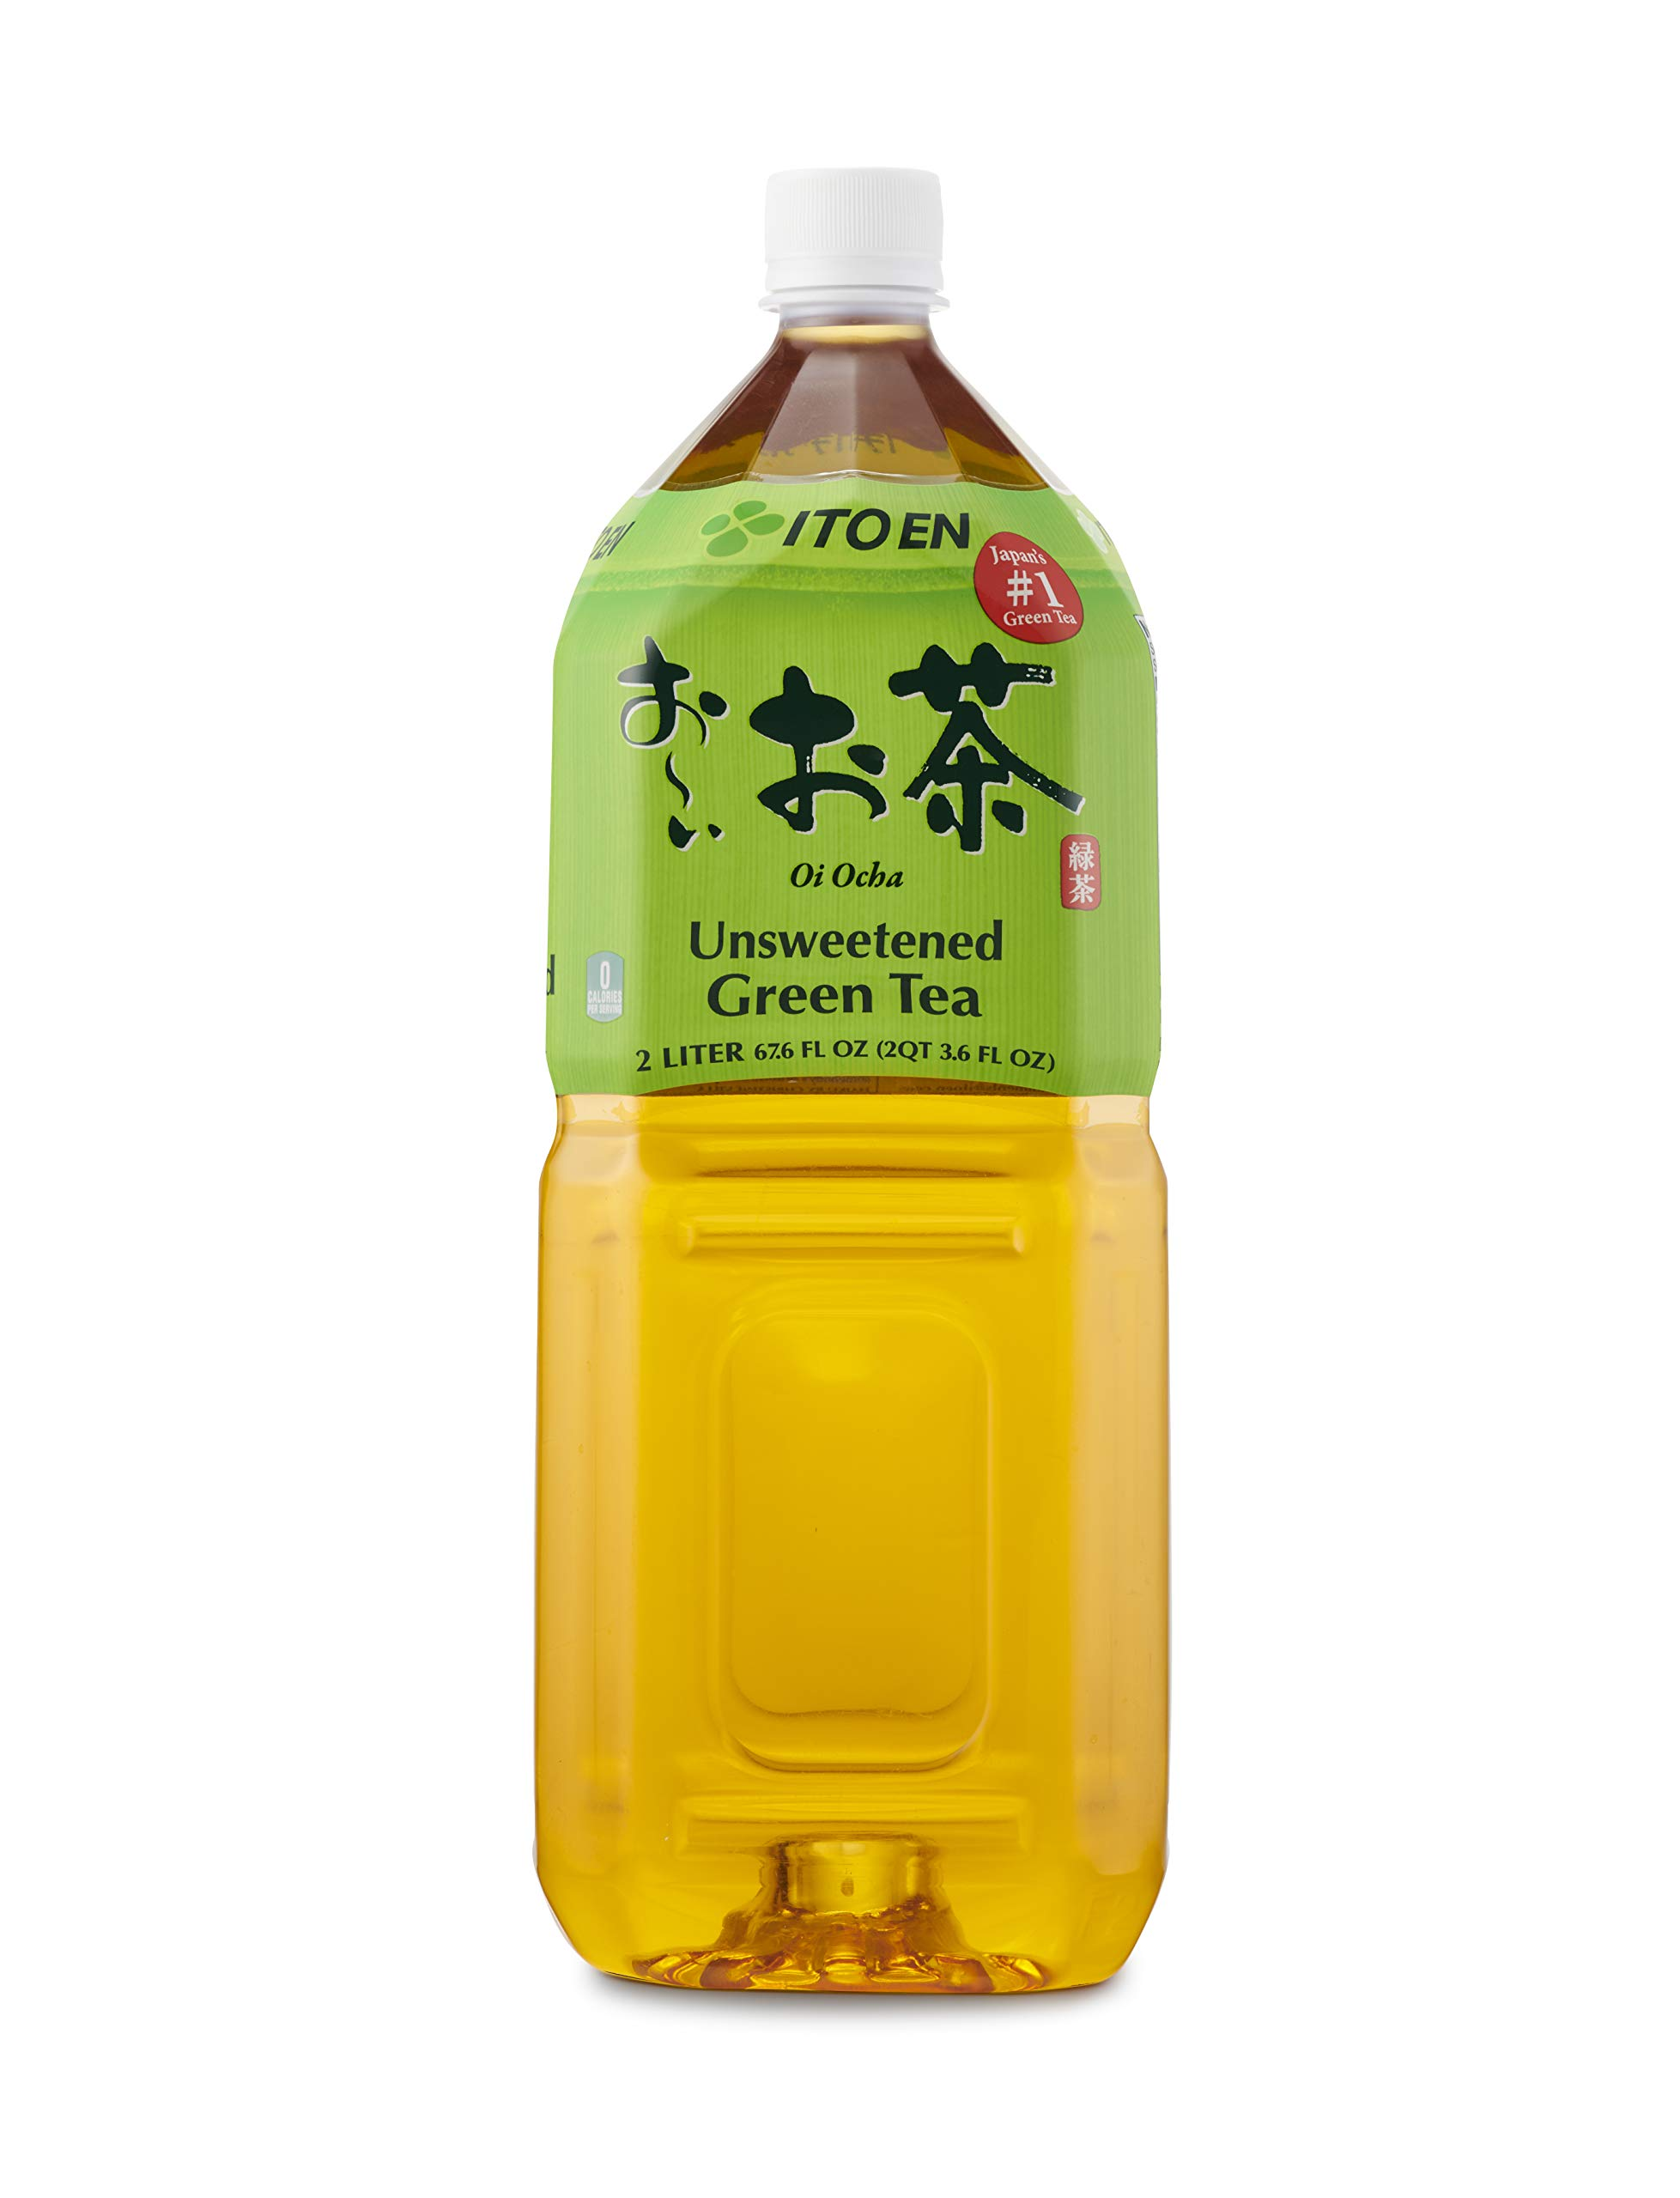 Oi Ocha Green Tea, 2 Liter Bottle (Pack of 6), No Sugar, No Artificial Sweeteners, Antioxidant Rich, Authentic Japanese Green Tea, Caffeinated, High in Vitamin C by Ito En